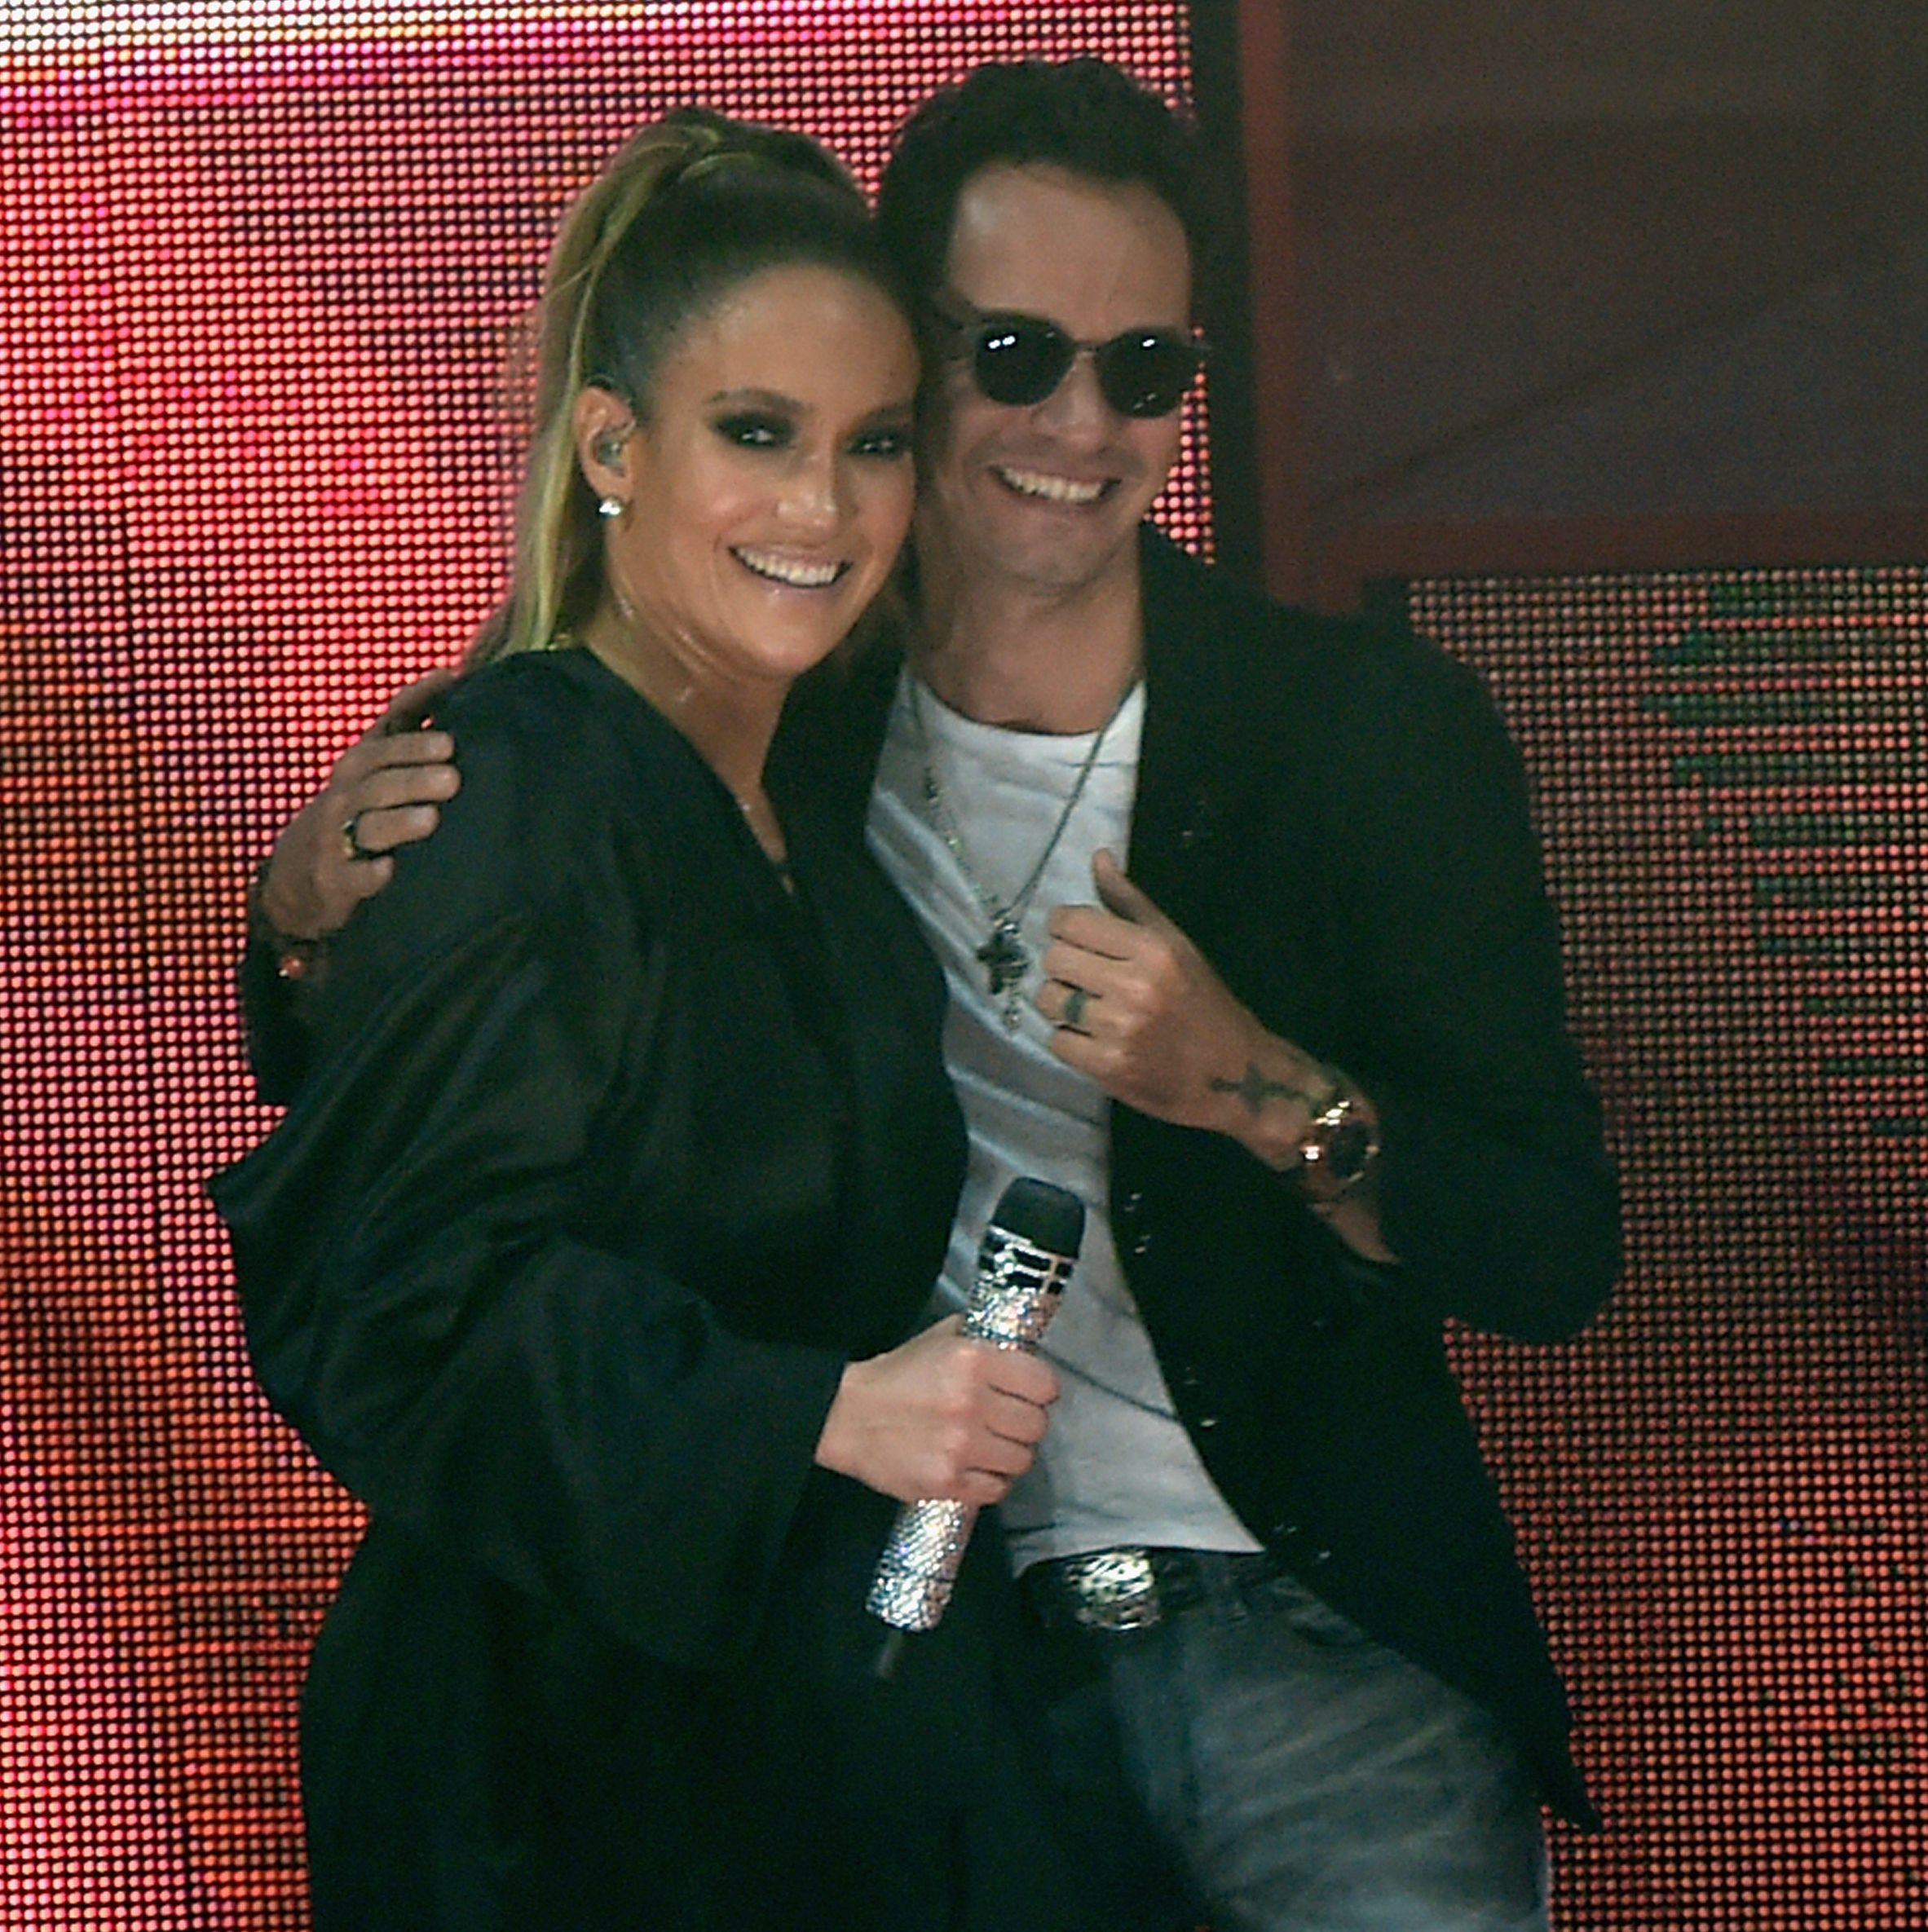 Jennifer Lopez and Marc Anthony When these powerhouse stars got together, it just seemed...right. But after seven years of marriage and two children, the couple decided to call it quits.